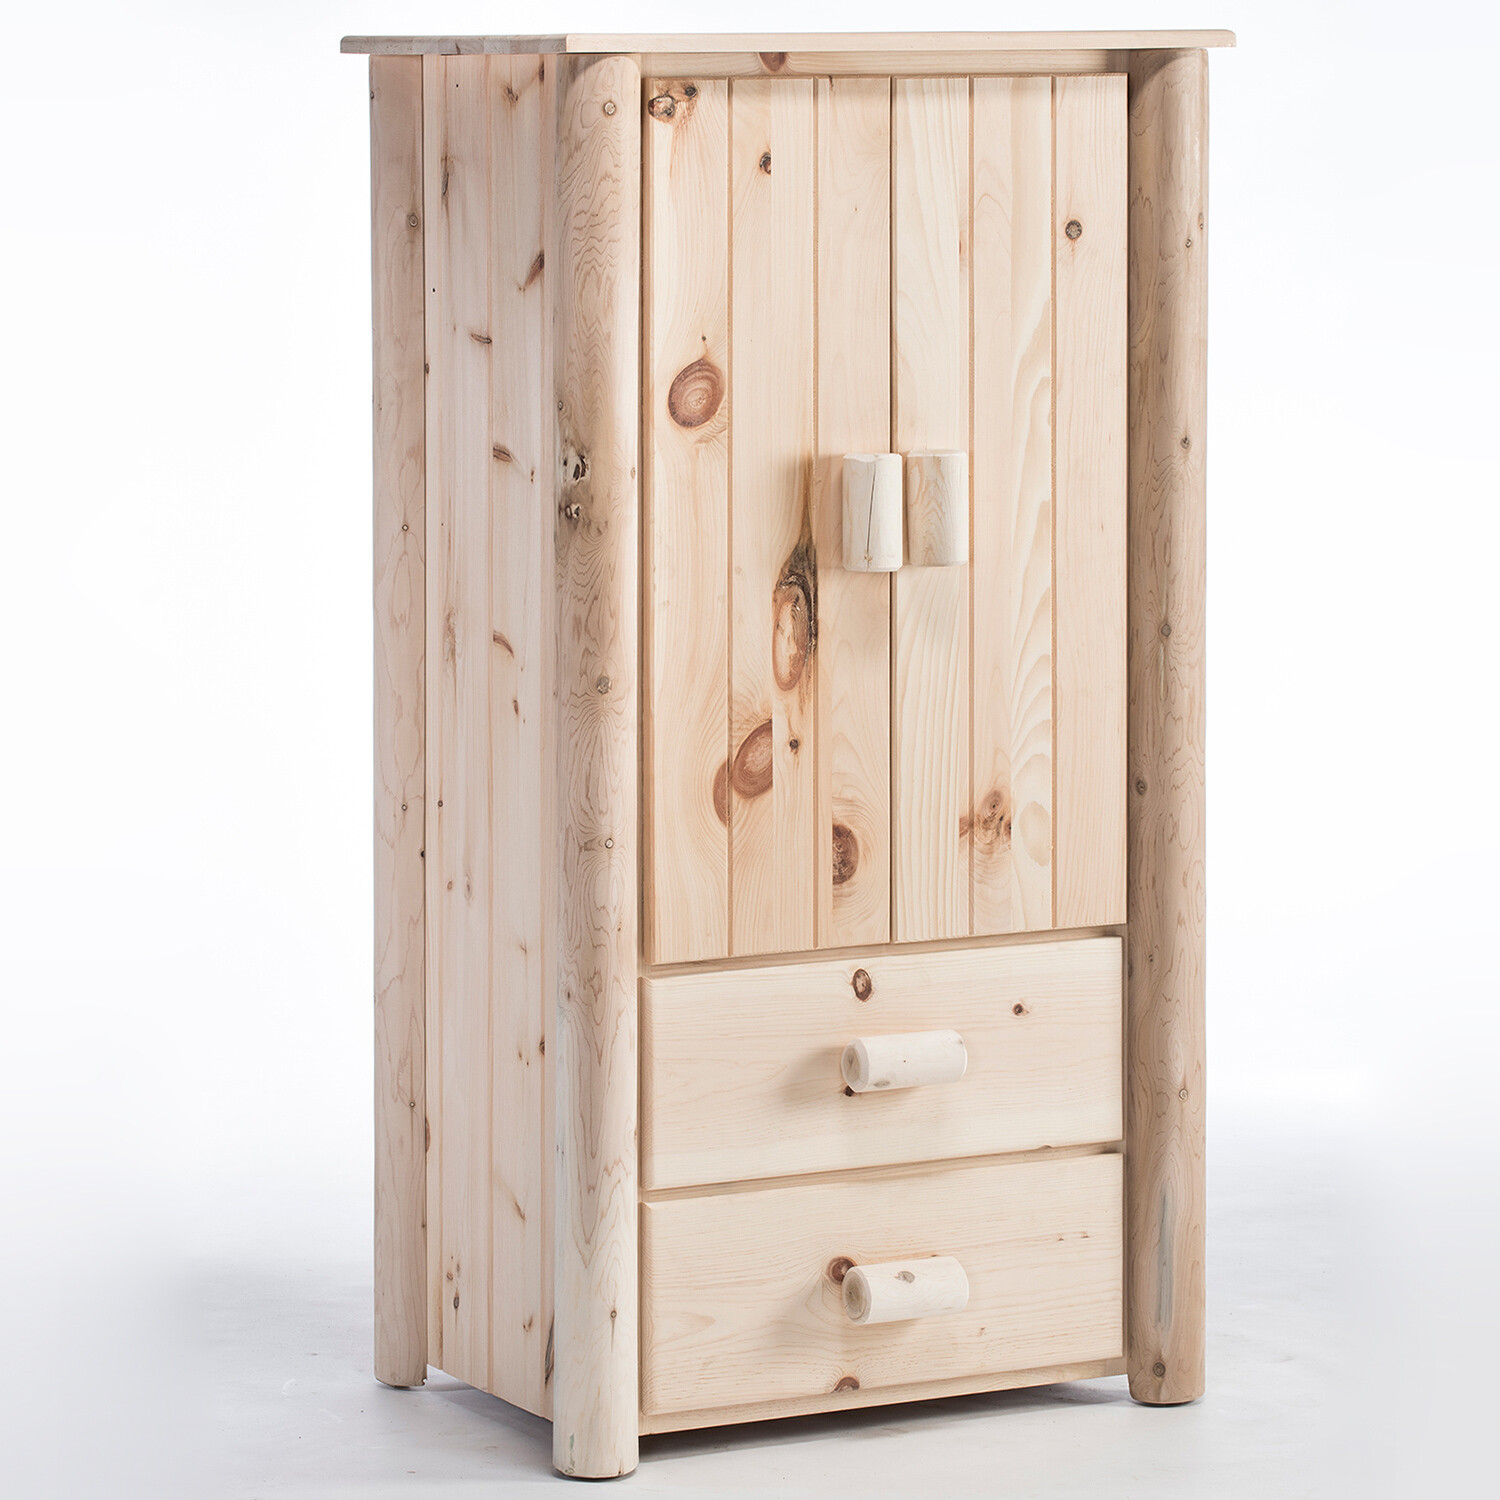 H20/N Frontier Log Armoire, Unfinished